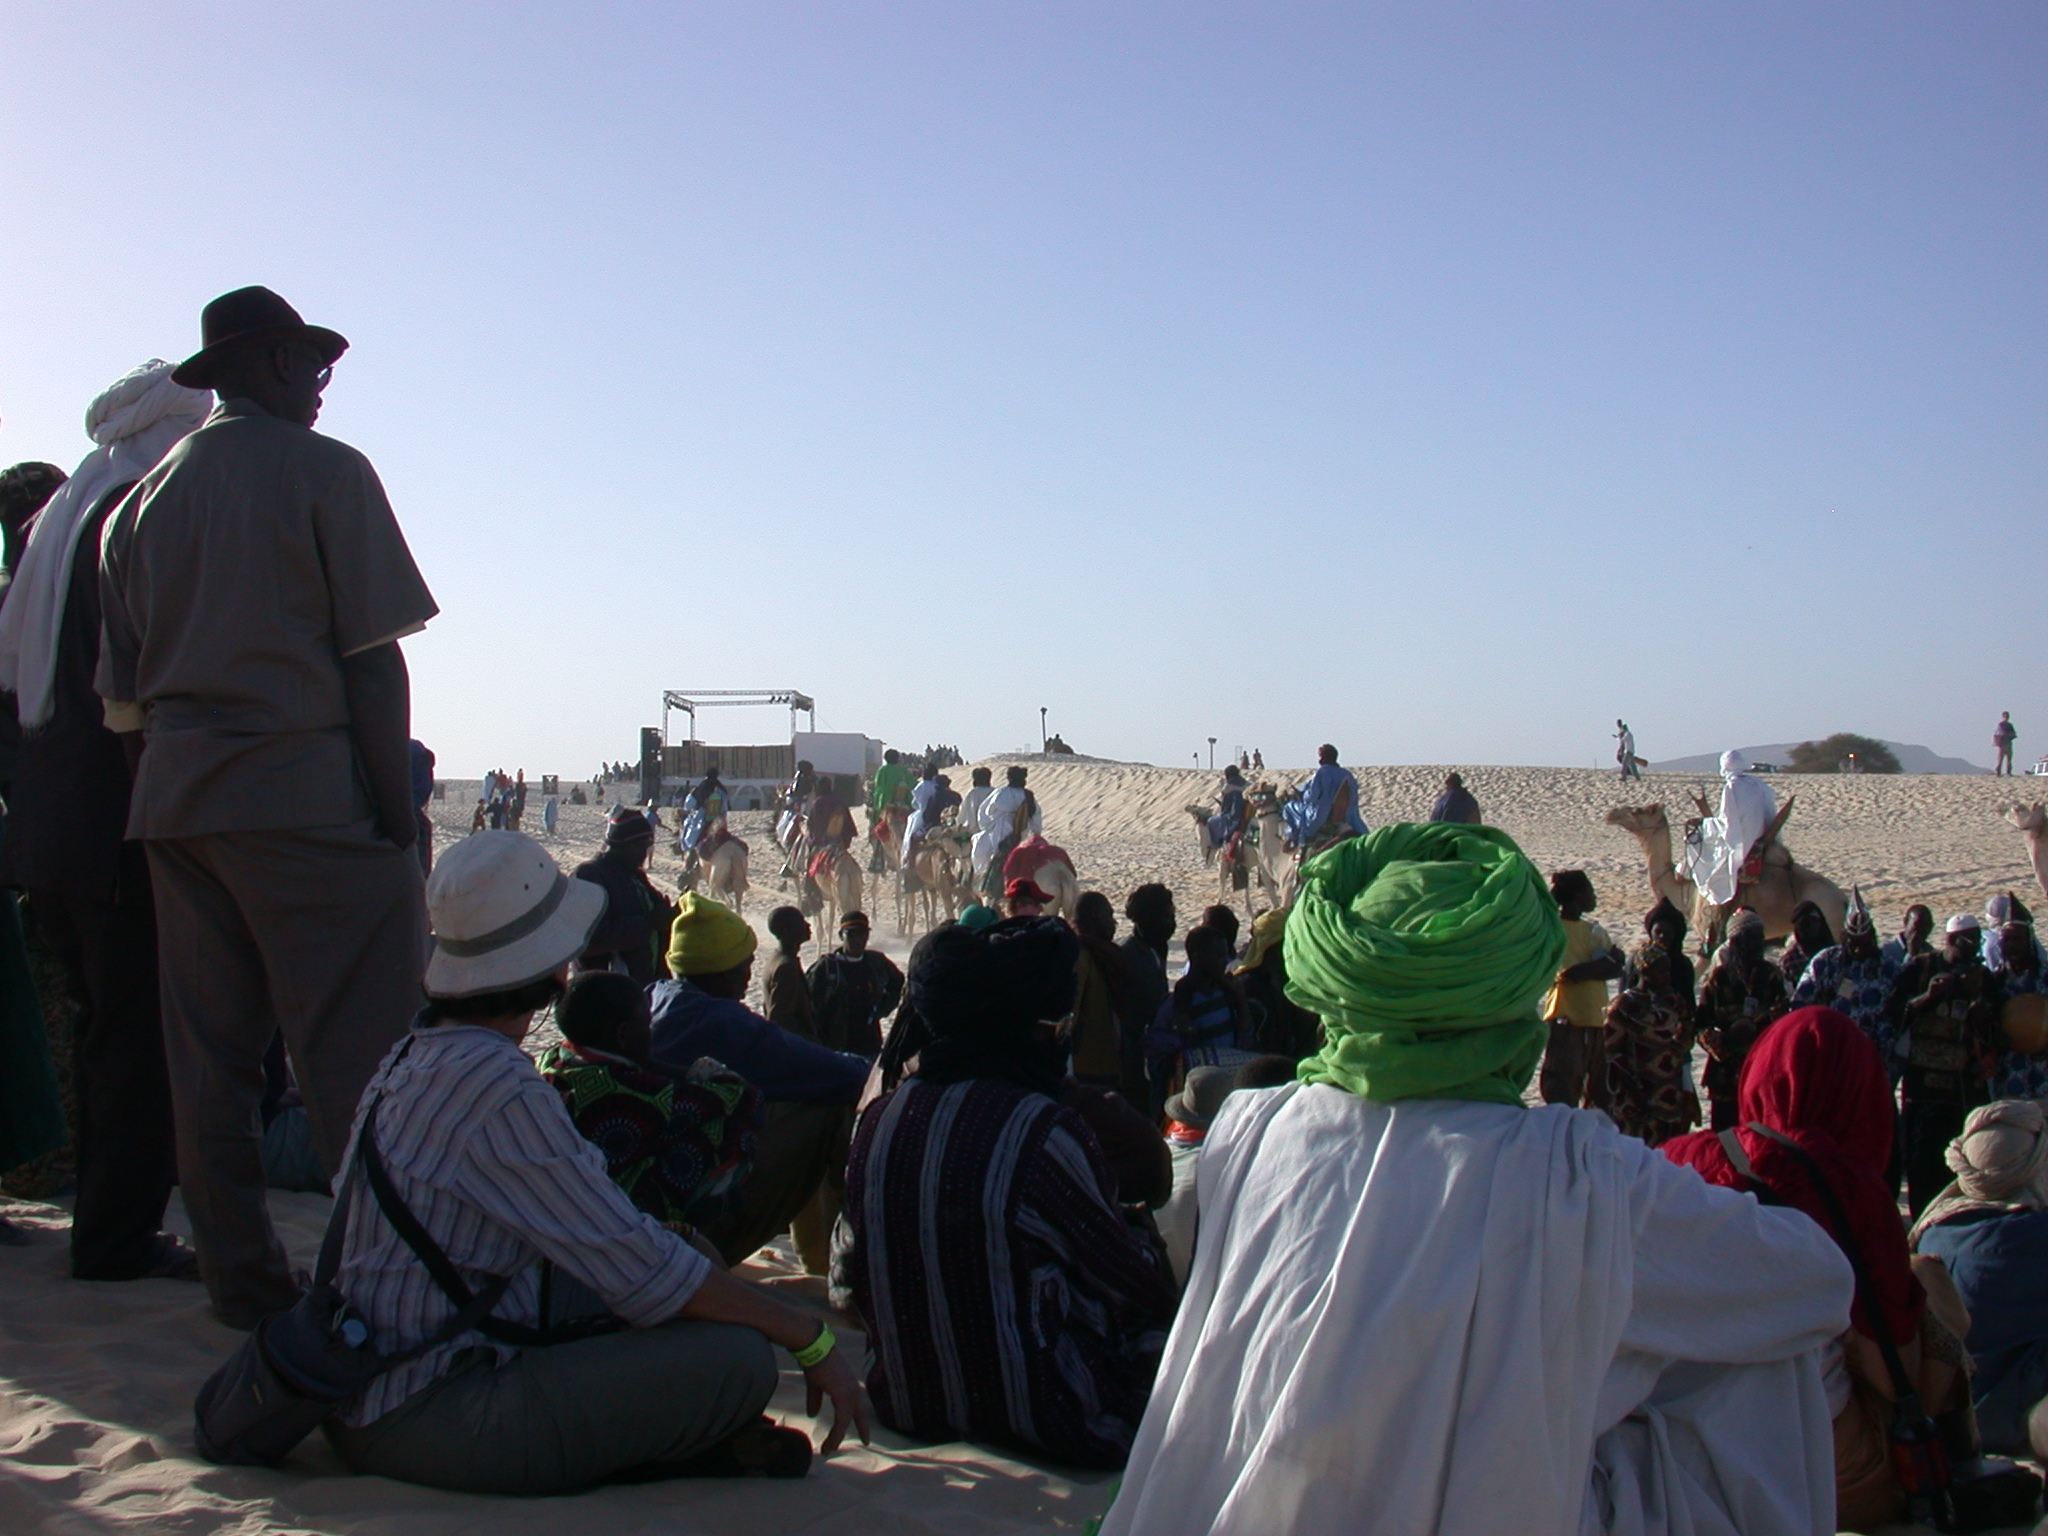 Audience Experiencing Local Mali Musicians, Festival in the Desert, Essakane, Mali